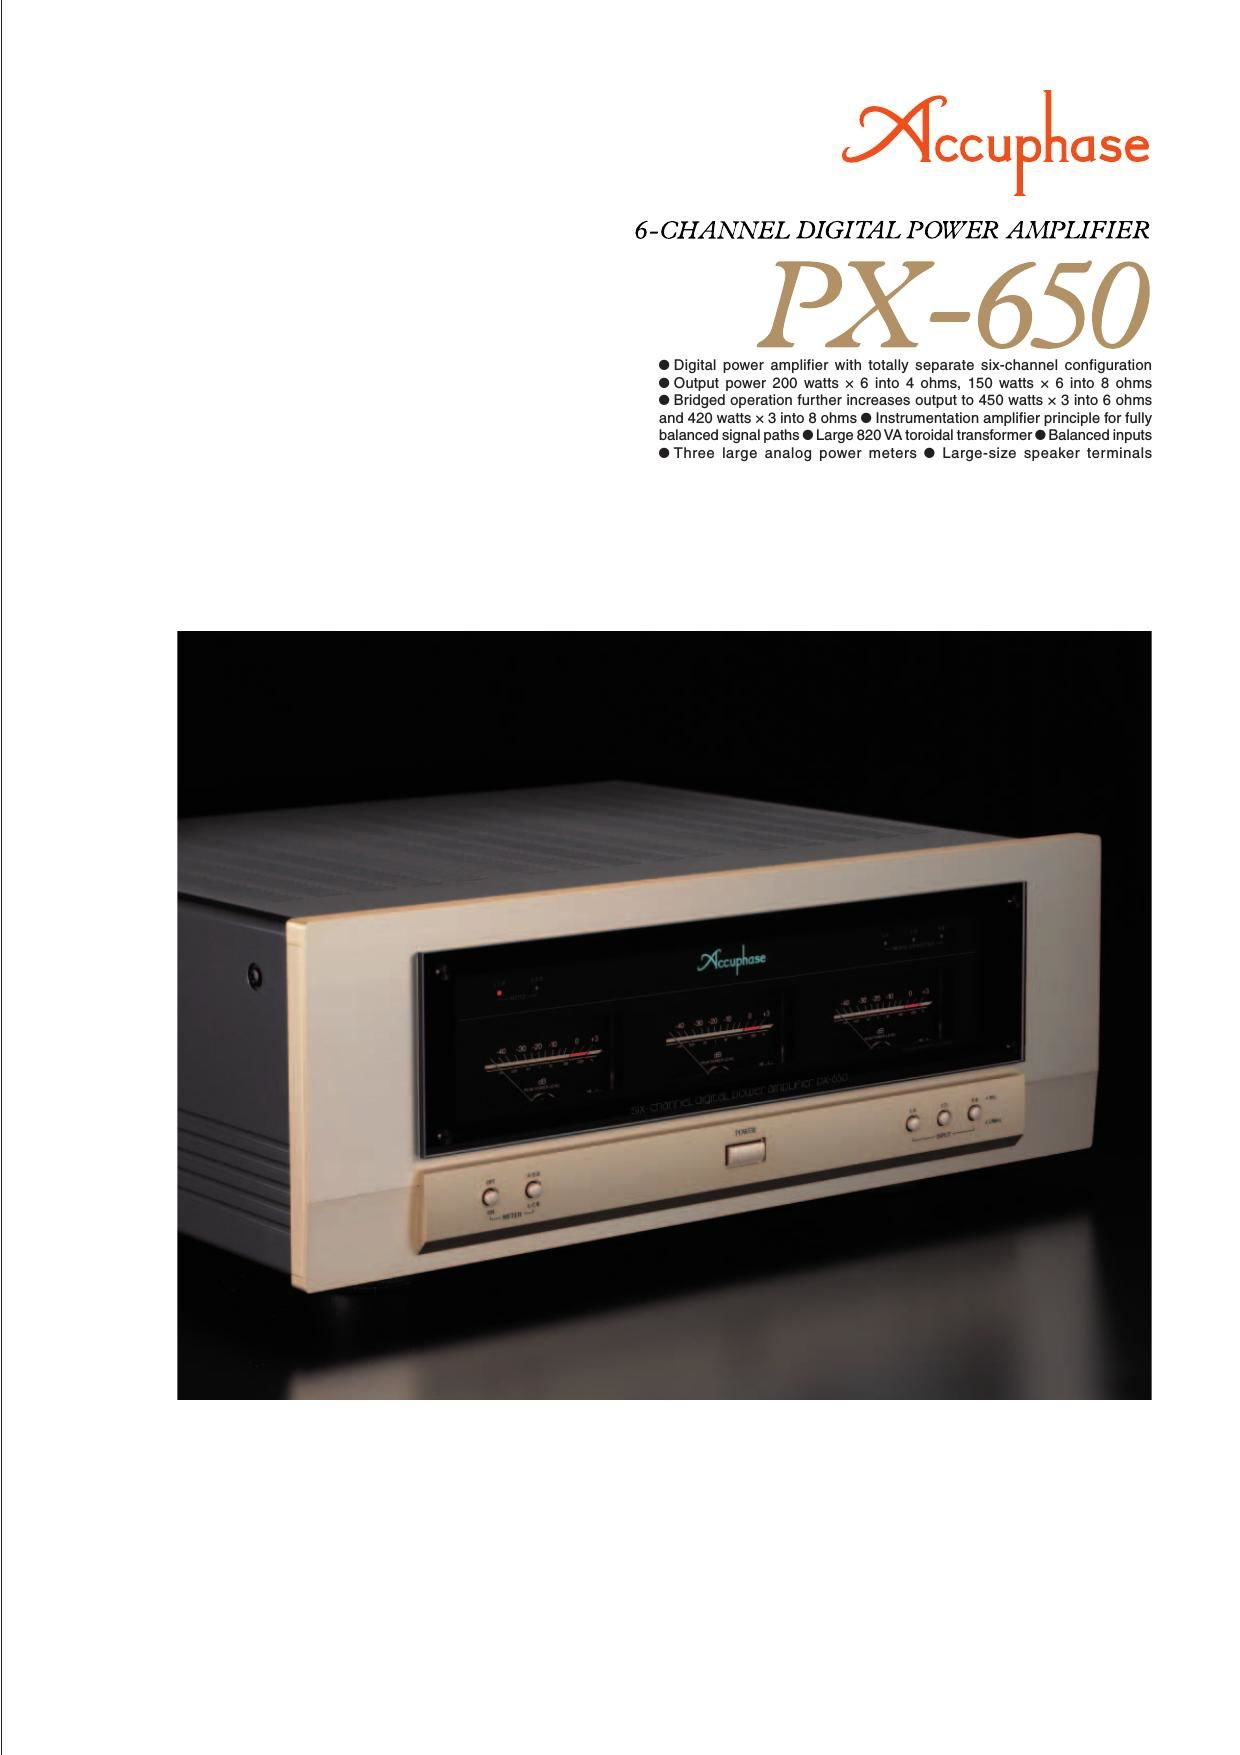 Accuphase PX 650 Brochure